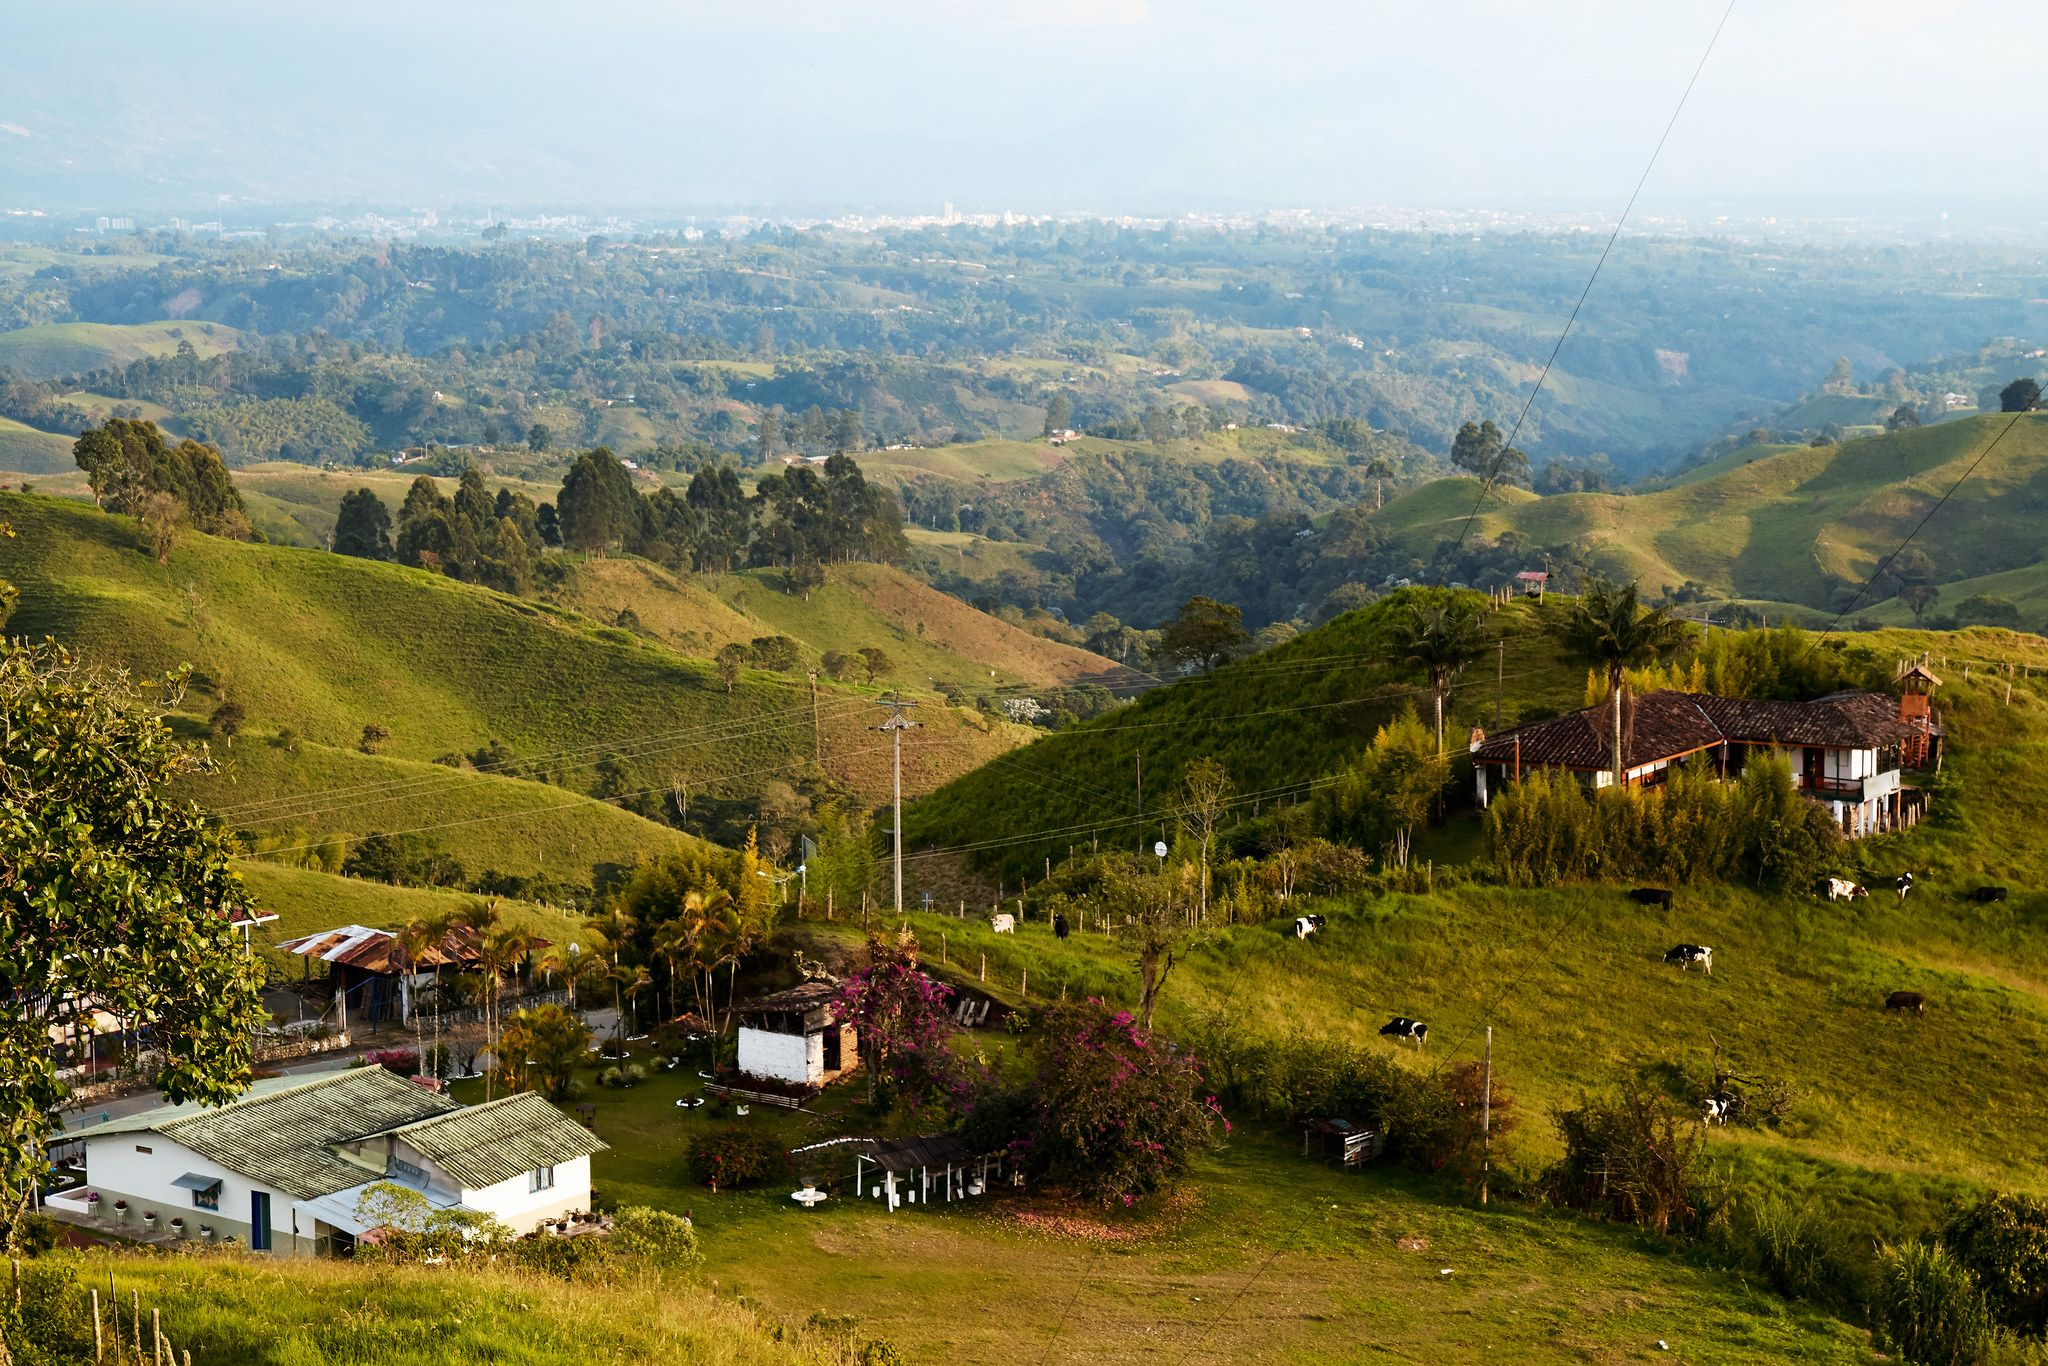 Colombia Landscape With Images Landscape Photo Outdoor